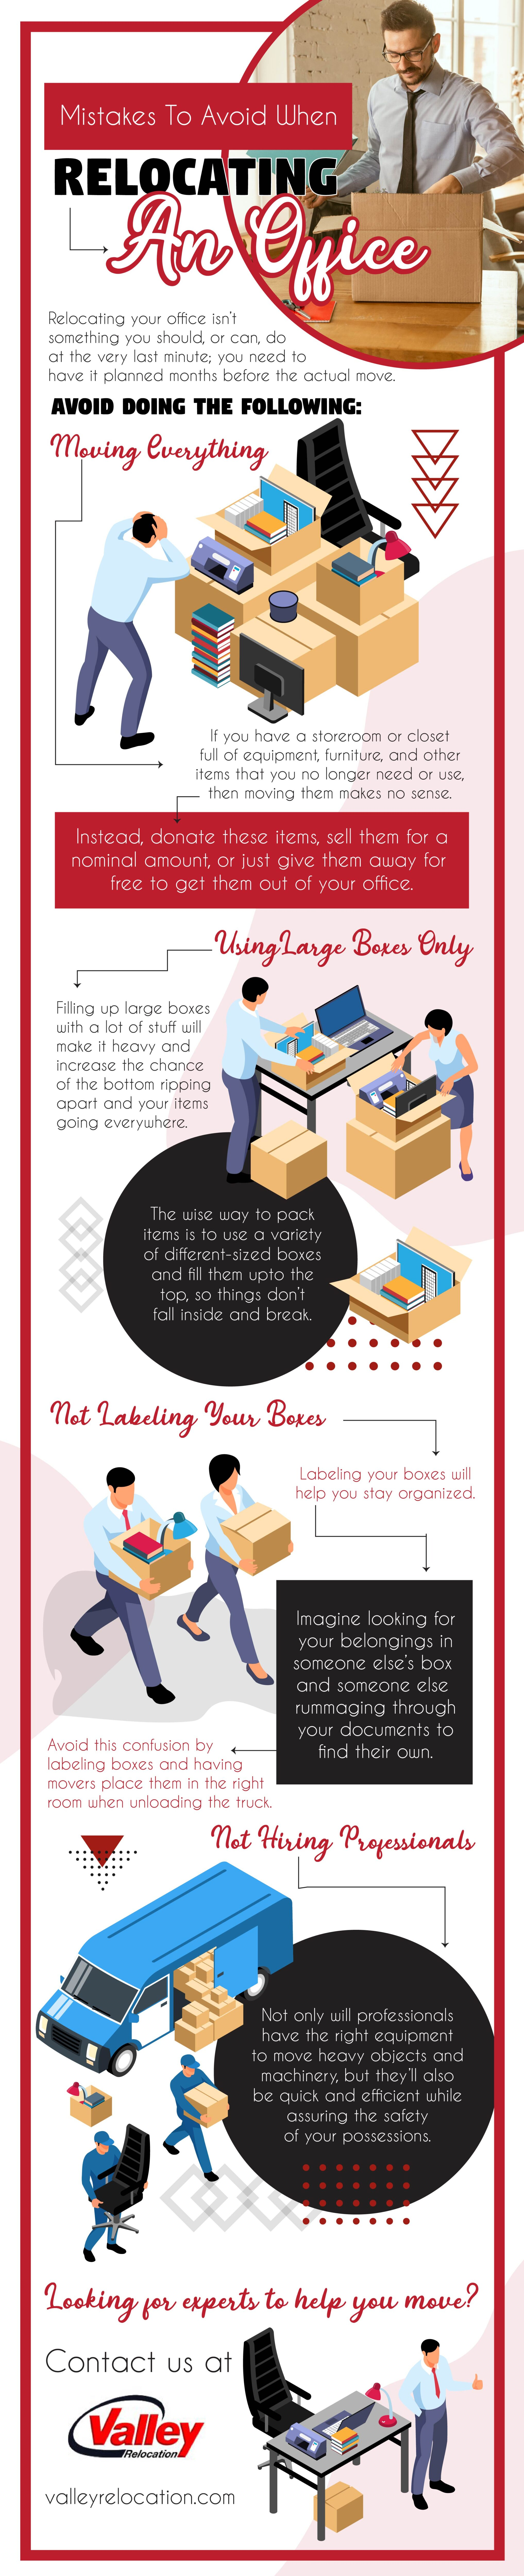 Mistakes To Avoid When Relocating An Office